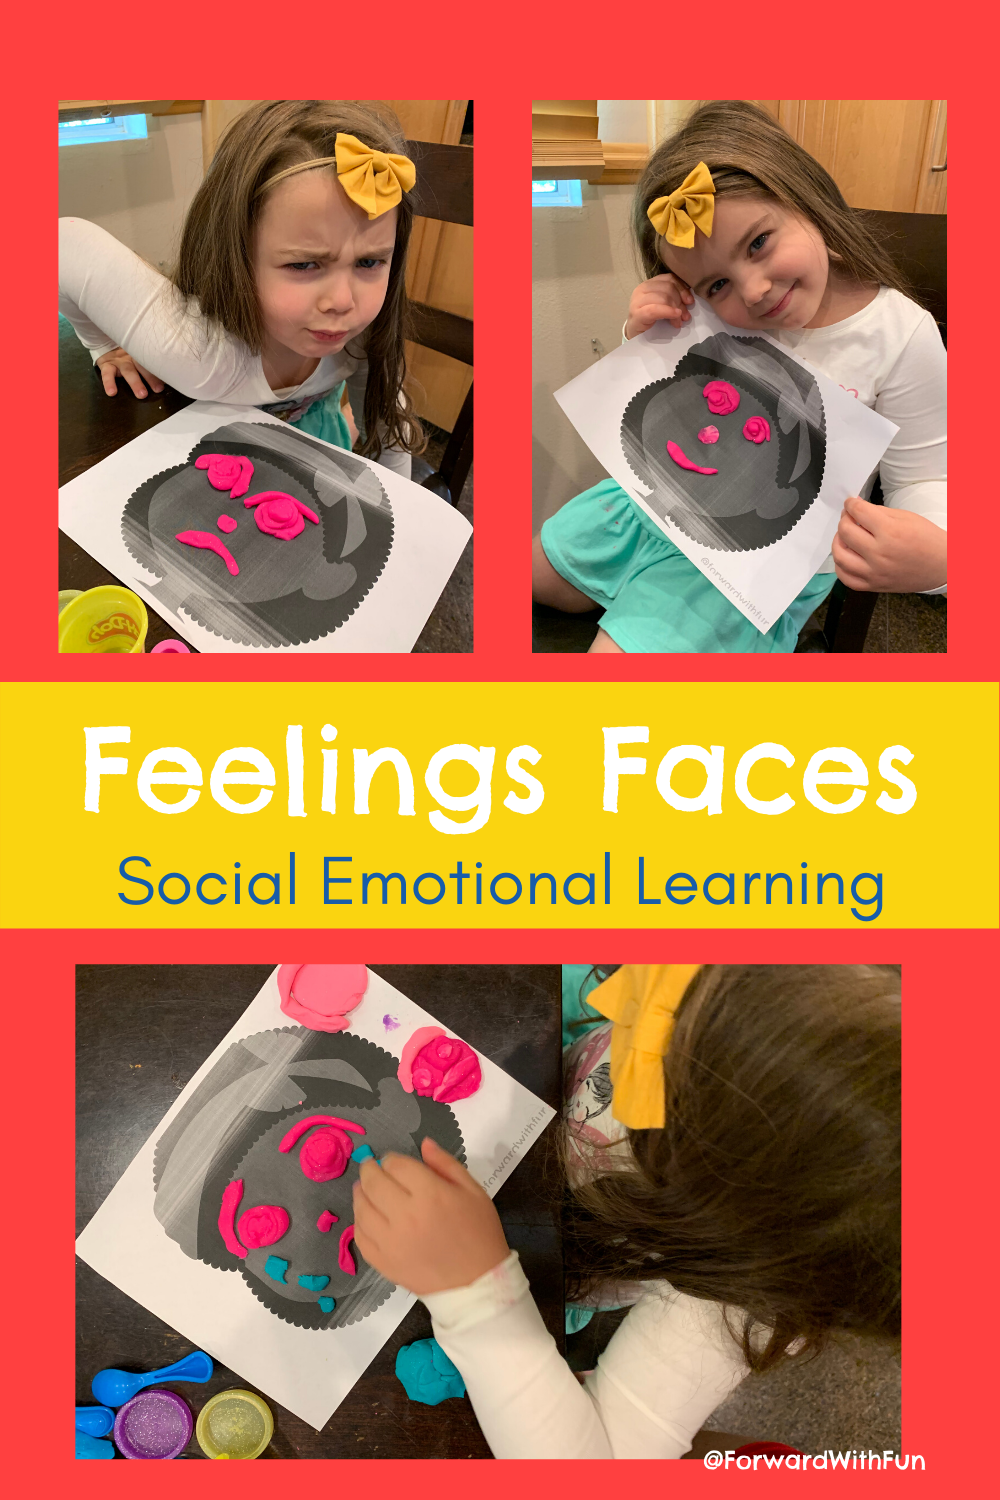 Emotional Intelligence is built by learning how to recognize, understand and label feelings.